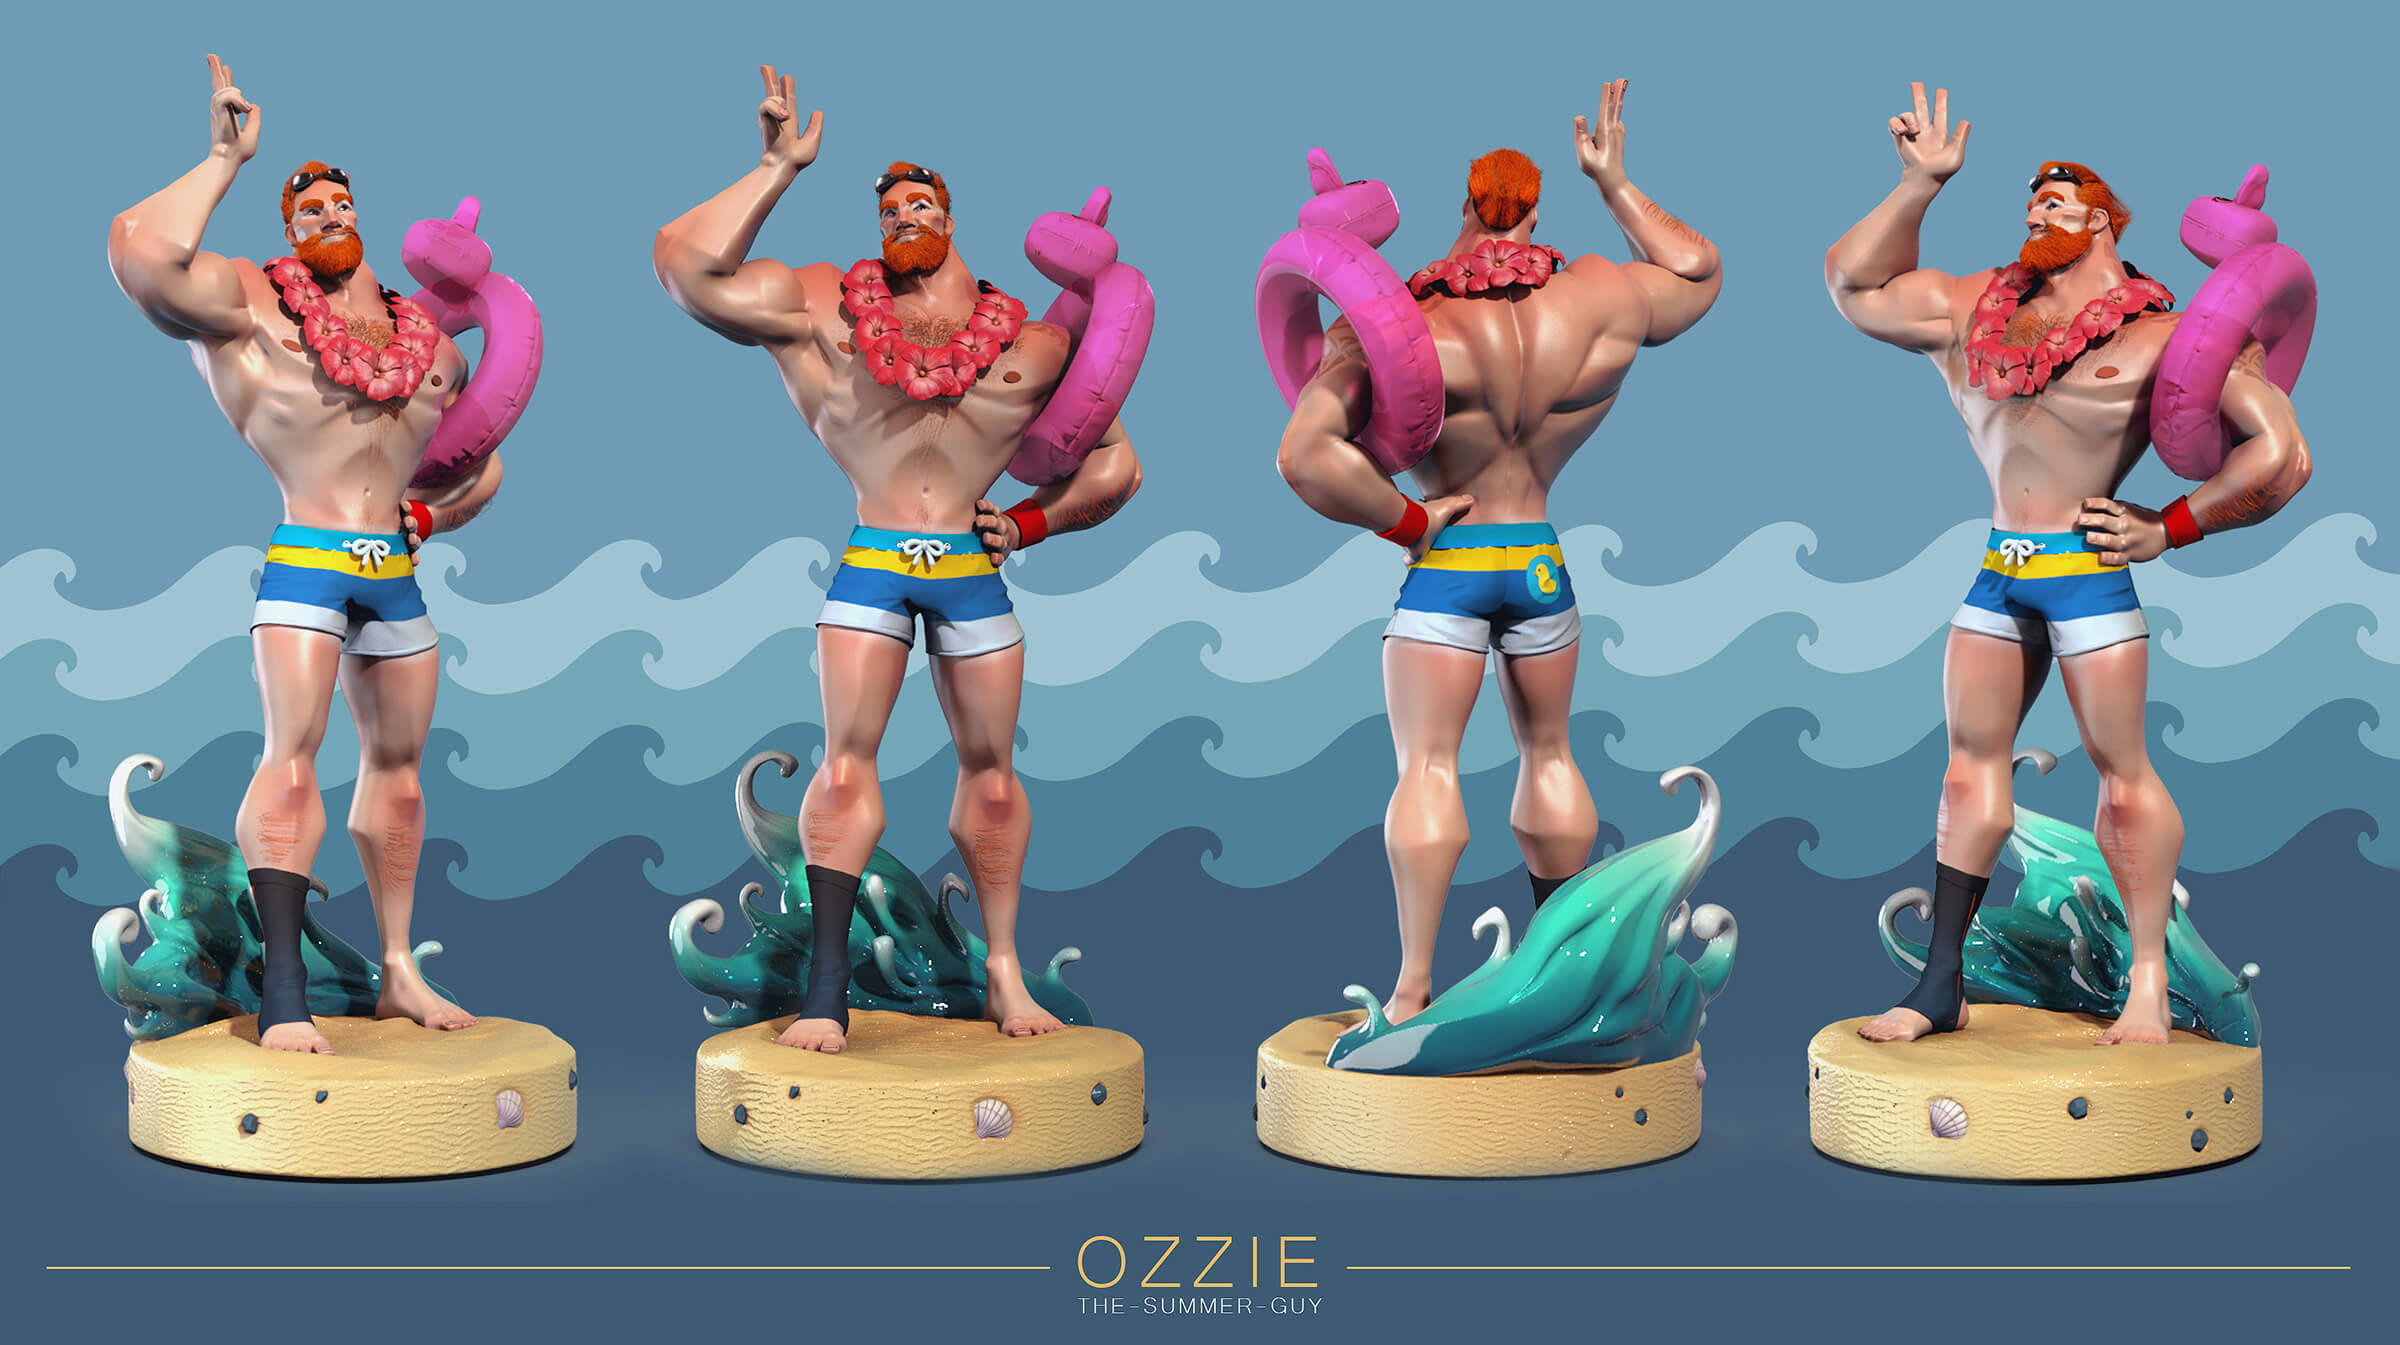 Multiple views of a muscular man wearing swimming trunks and a lei